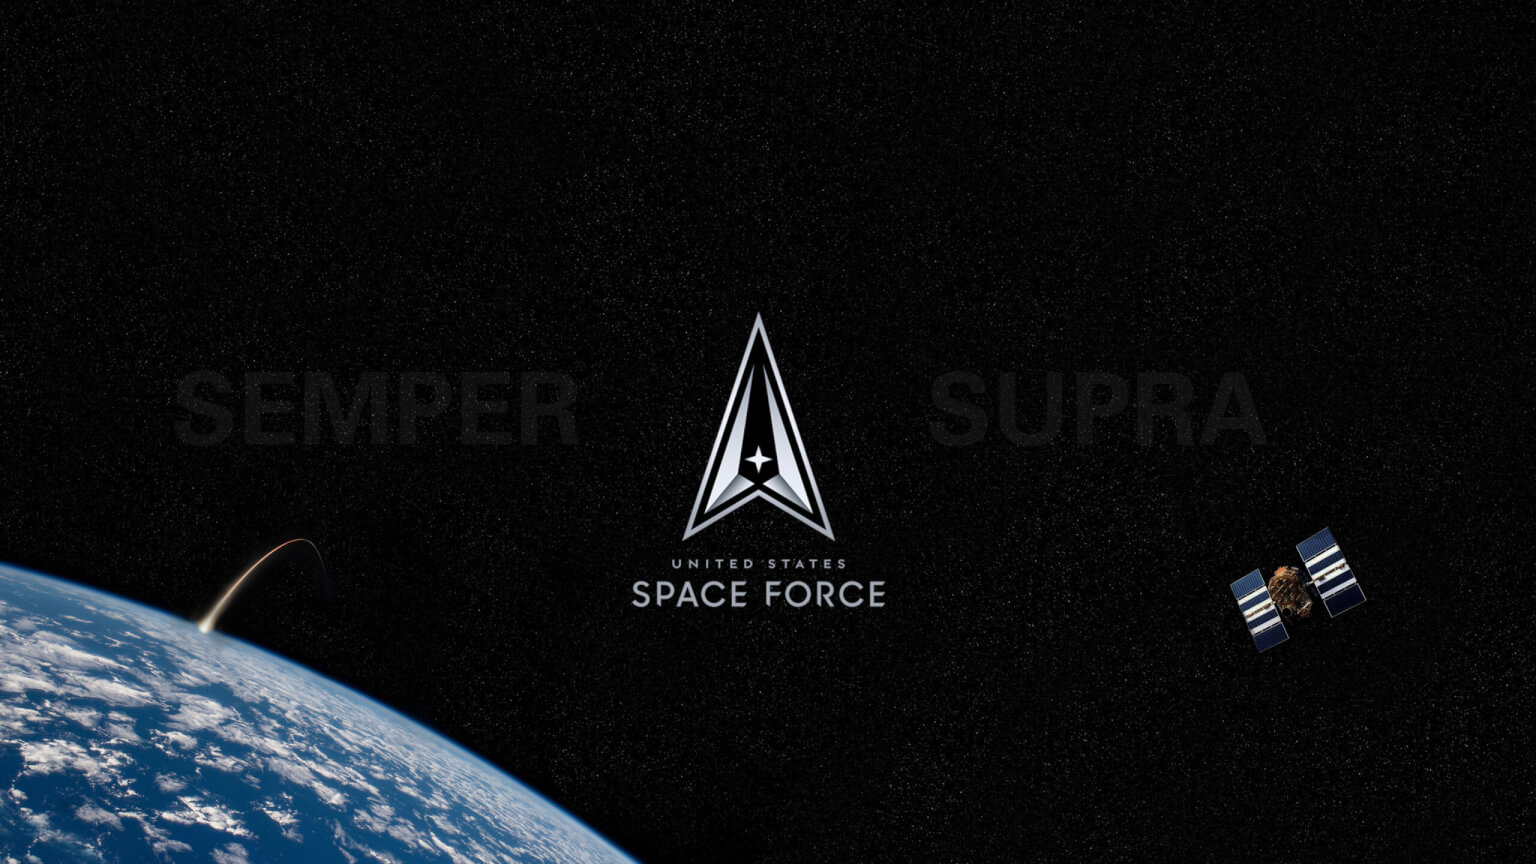 US Space Force logo in space